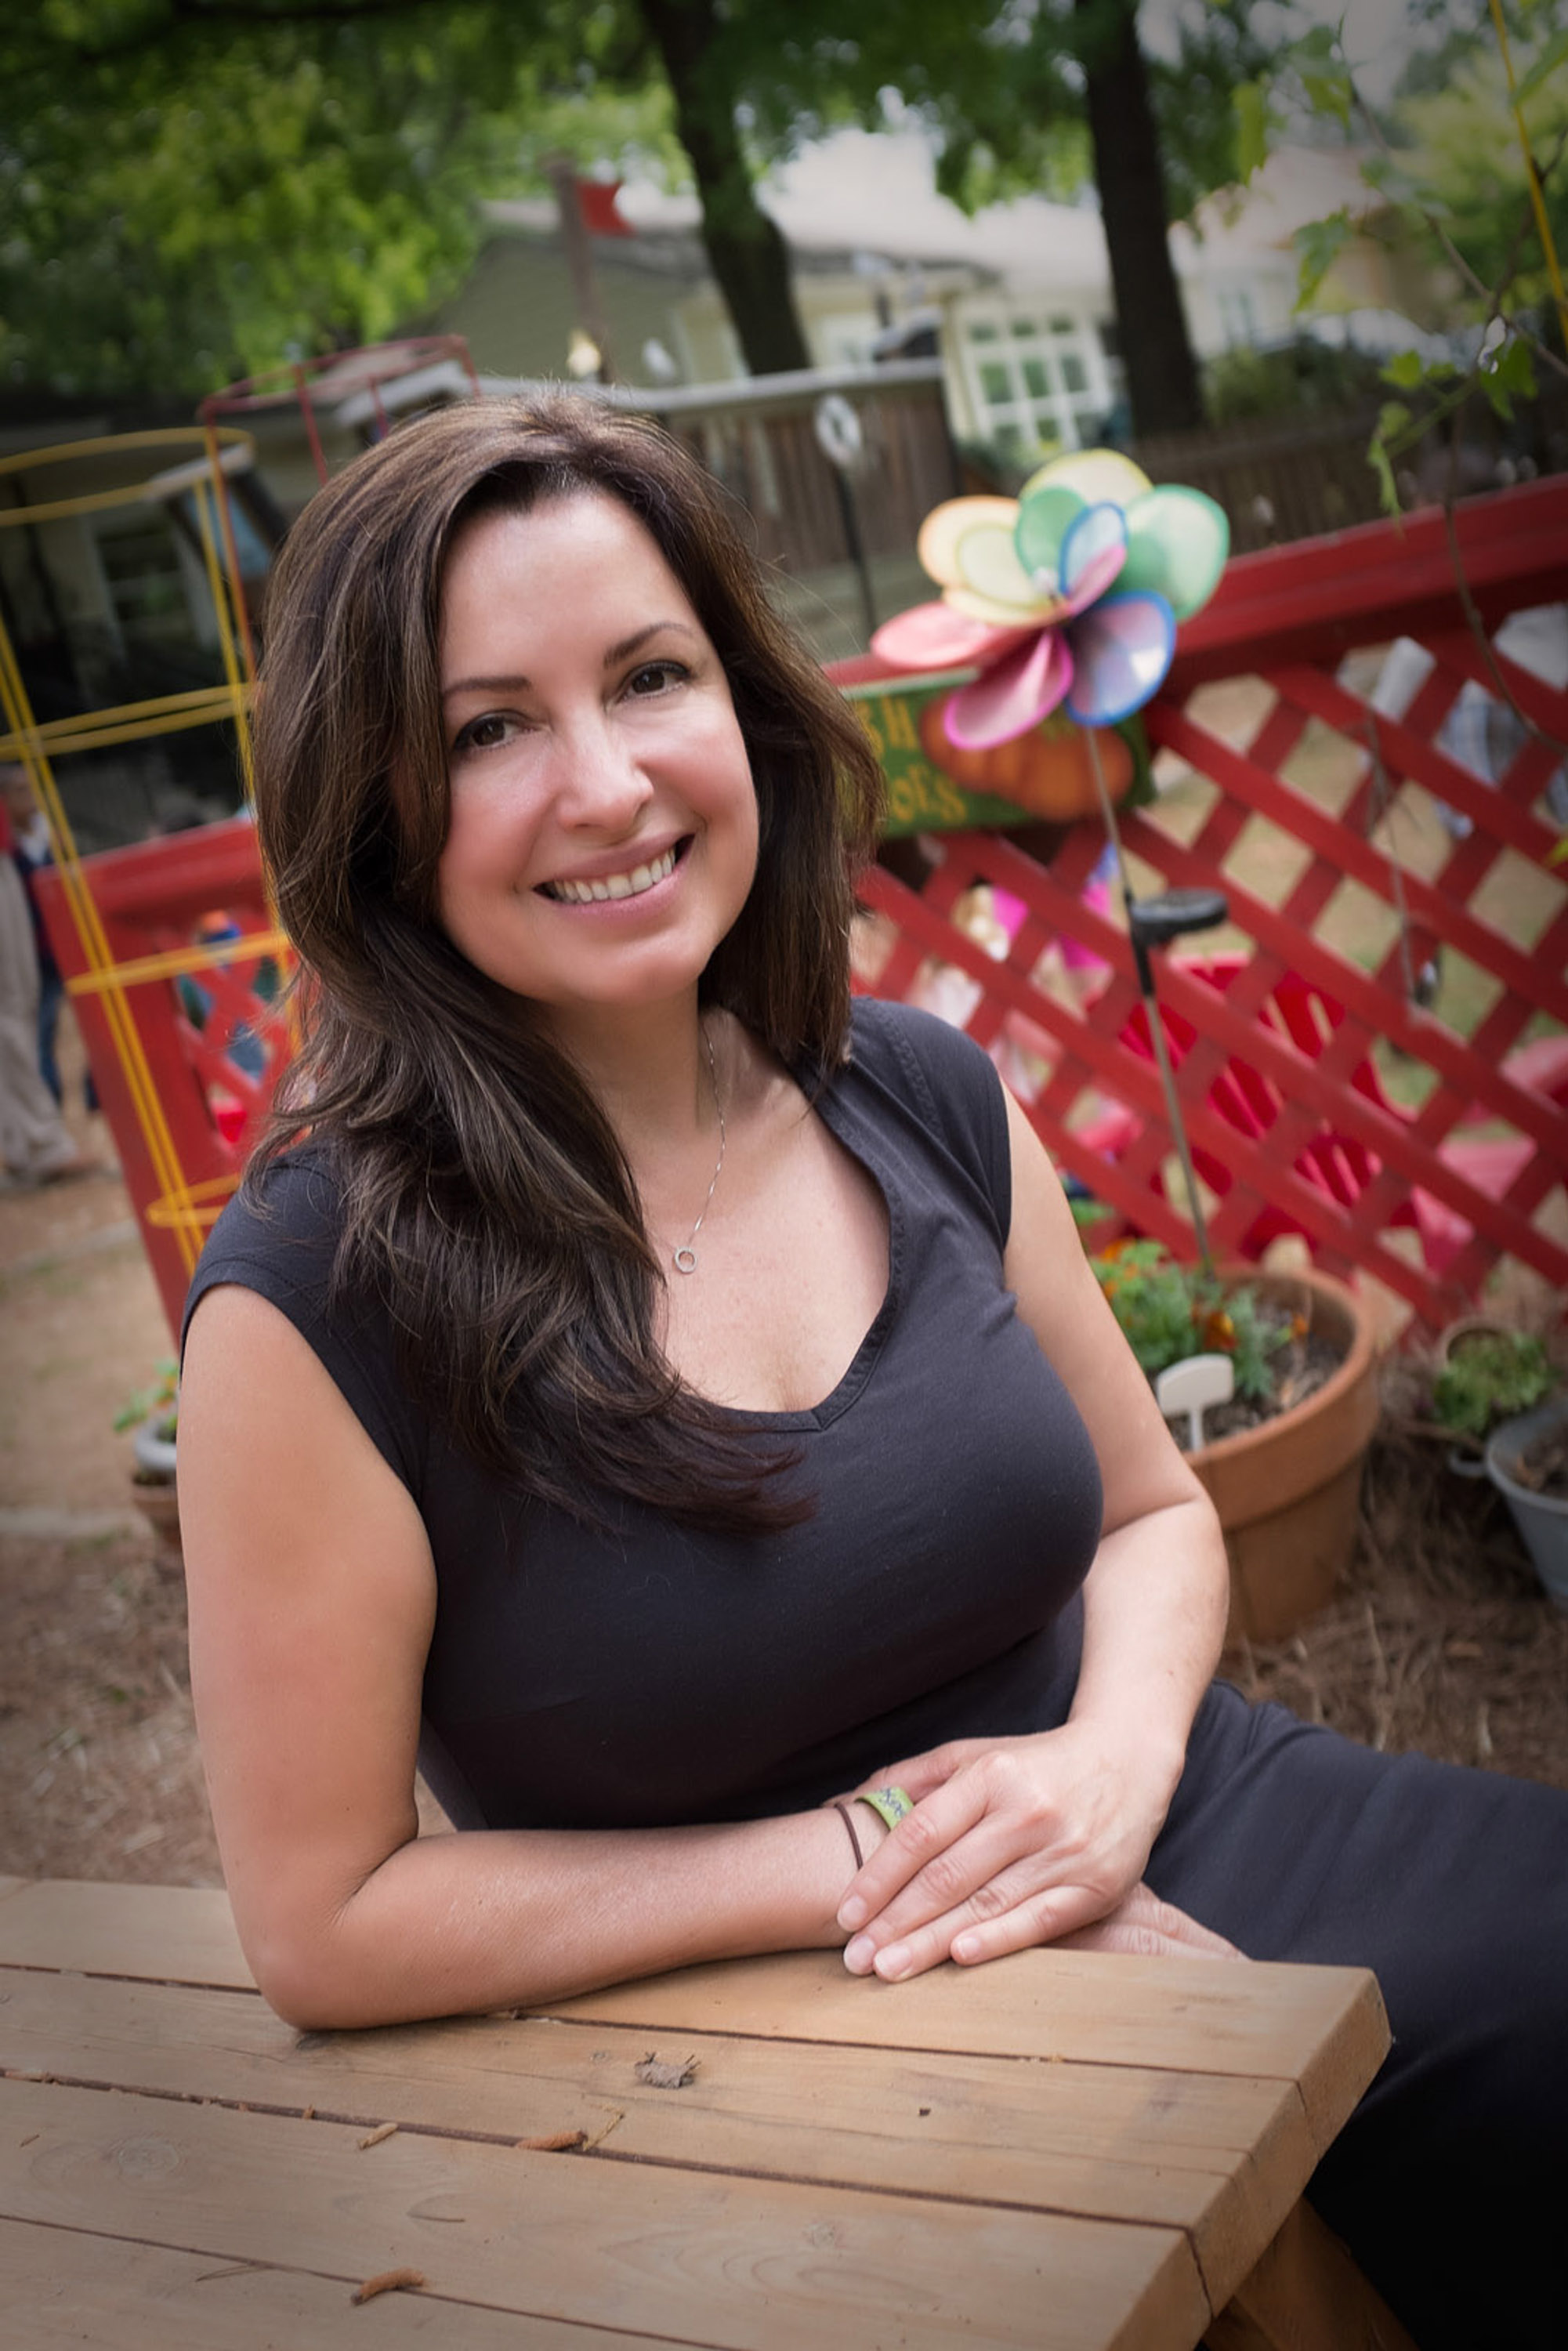 Gina Ward - Founder/Teacher/Director   AMI trained teacher and director with 24 years of experience in Montessori Education. For Ms. Ward, Montessori is not only a career, but a lifelong passion and commitment! The success of the two school's Ms. Ward has founded and directed, is attributed to highly trained staff members, hundreds of students who have thrived and blossomed under their devoted direction and the word of mouth from satisfied parents. Gina is also a Consultant for new Montessori Schools and Parent Coaching. On her off time she enjoys reading about health and nutrition, cooking, gardening, traveling and spending time with friends and family.